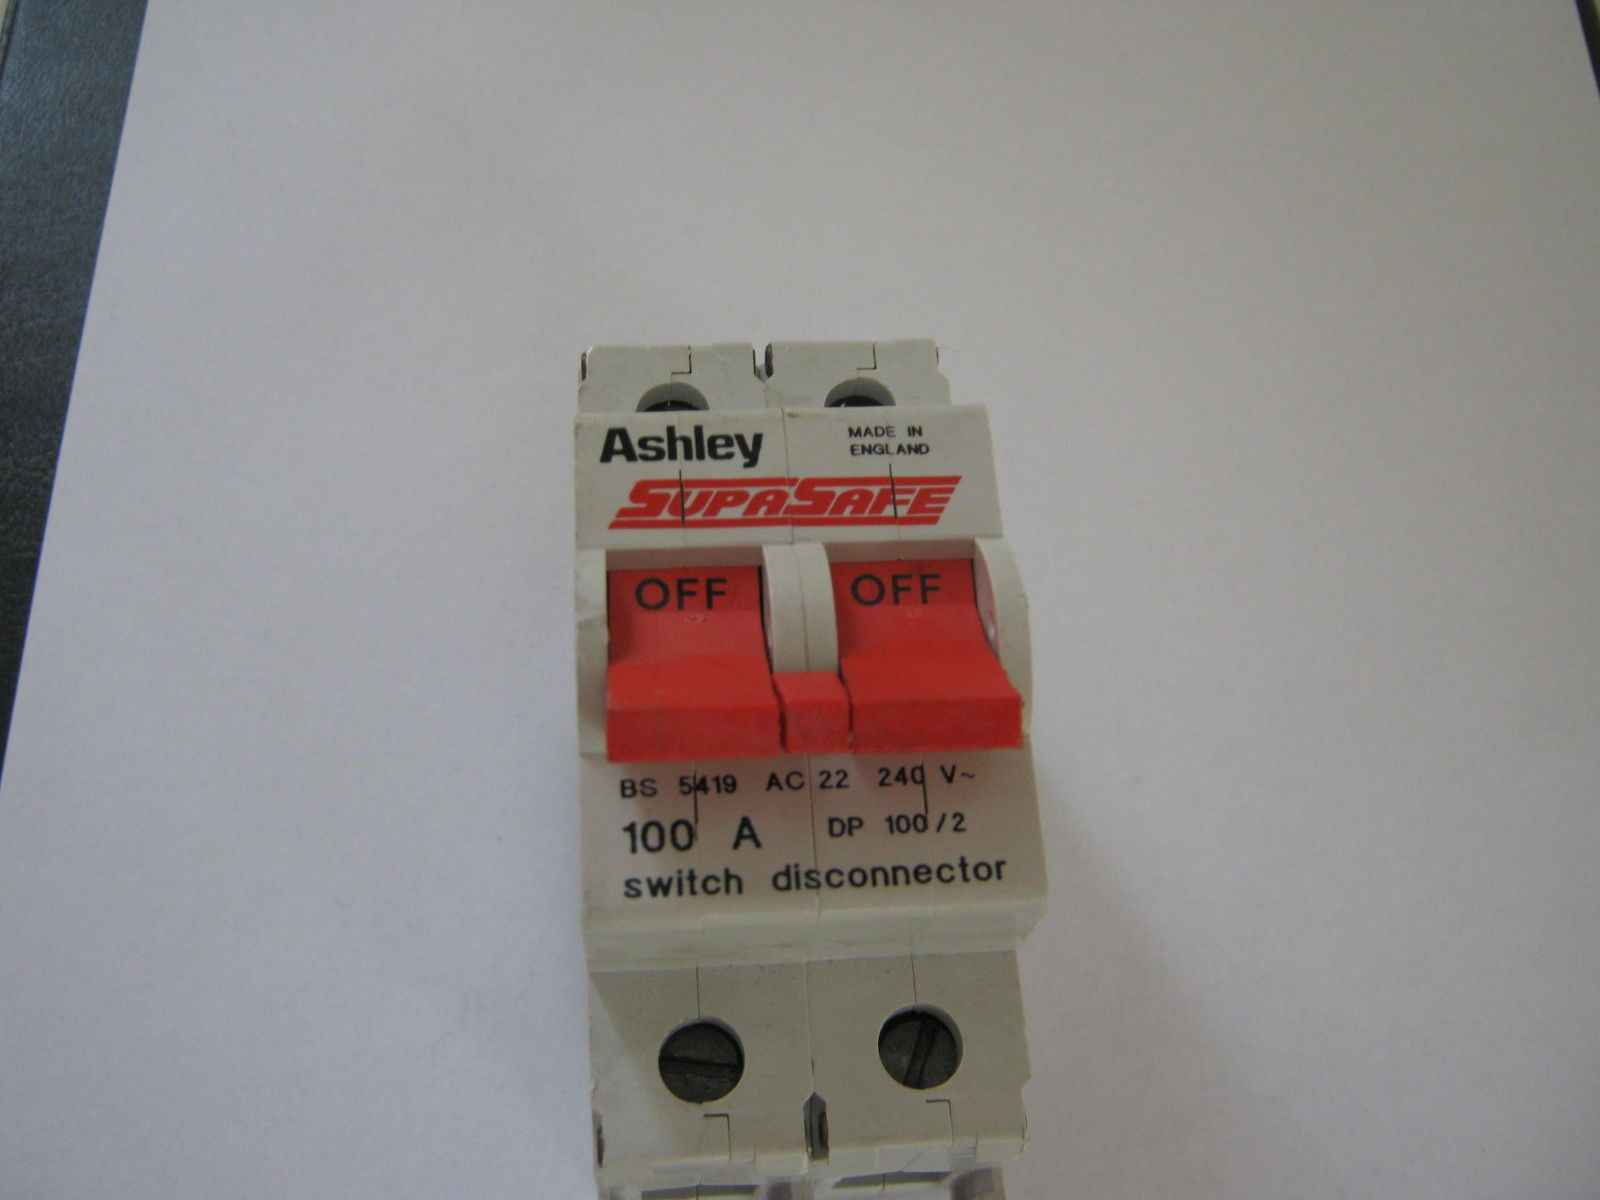 ashley supasafe 100 amp ac22 dp 100 2 switch disconnector. Black Bedroom Furniture Sets. Home Design Ideas